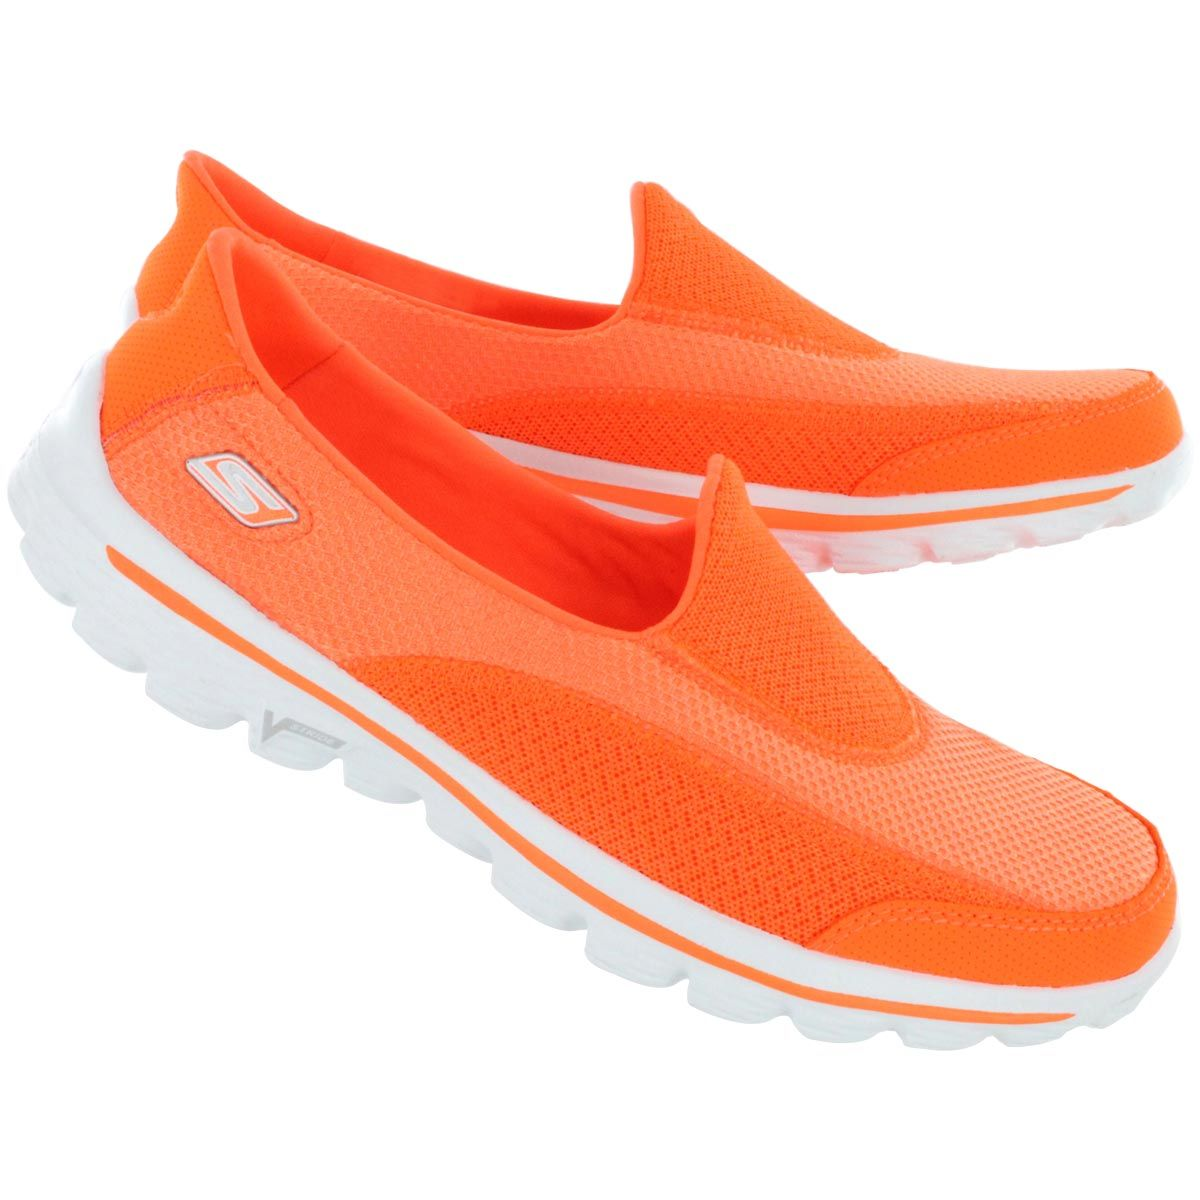 skechers on the go womens orange Sale